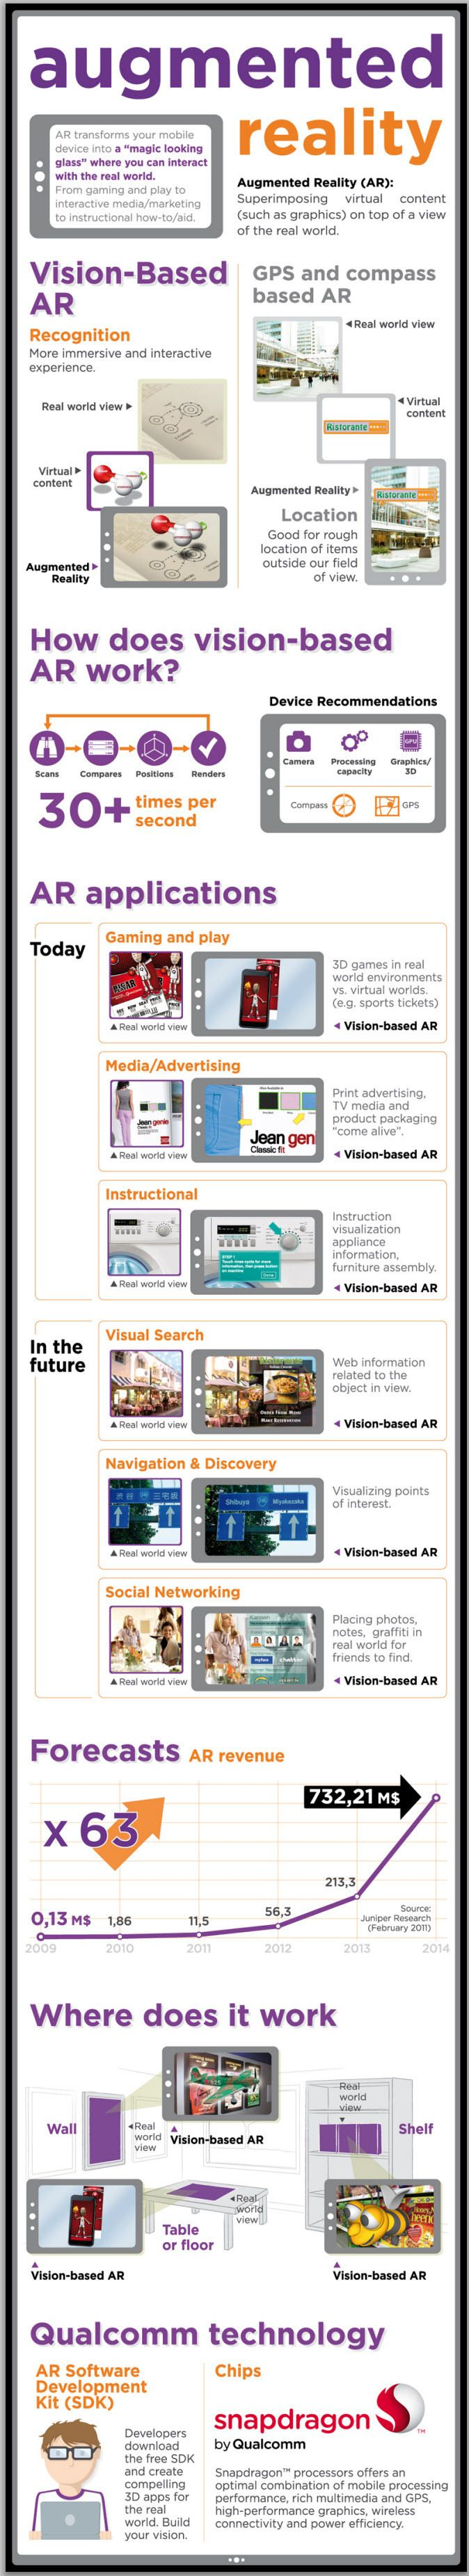 HI-TECH - Augmented Reality infographic... To know more log on to www.extentia.com (file://www.extentia.com/) #Extentia #AR #VisionAR